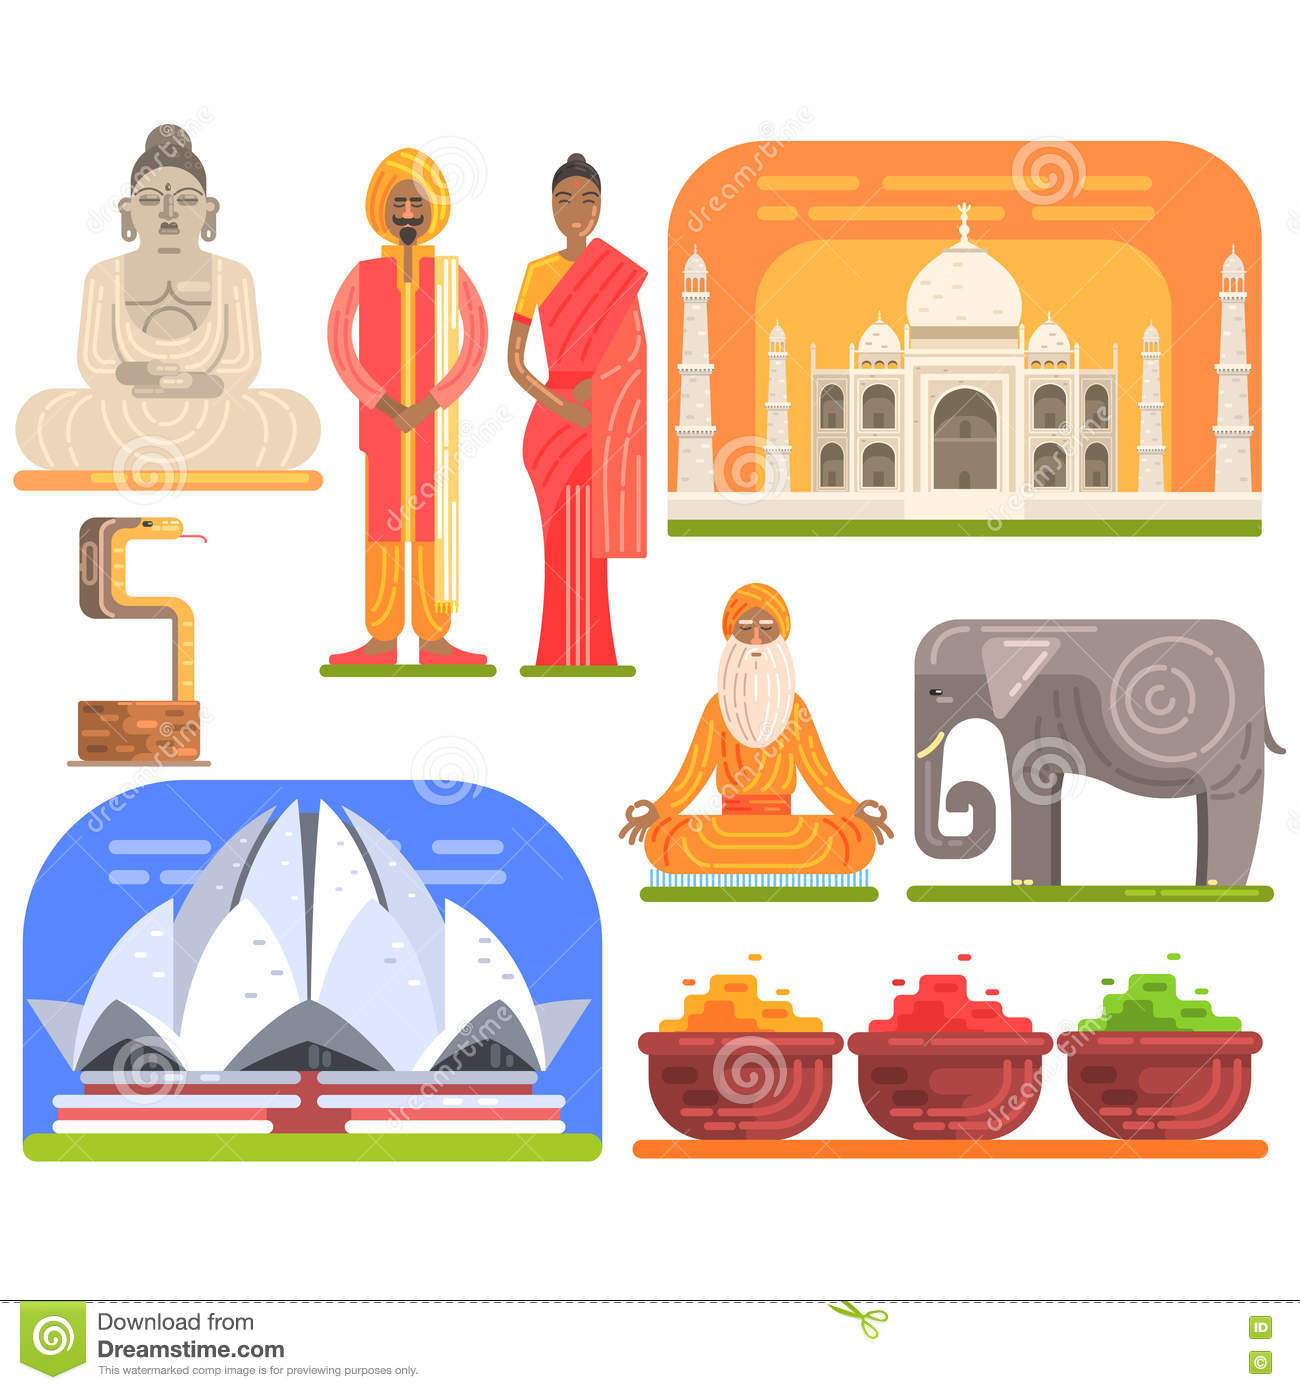 Touristic attractions symbols isometric chile map stock vector famous touristic attractions to see in india traditional tourism symbols of indian culture including clothing biocorpaavc Images